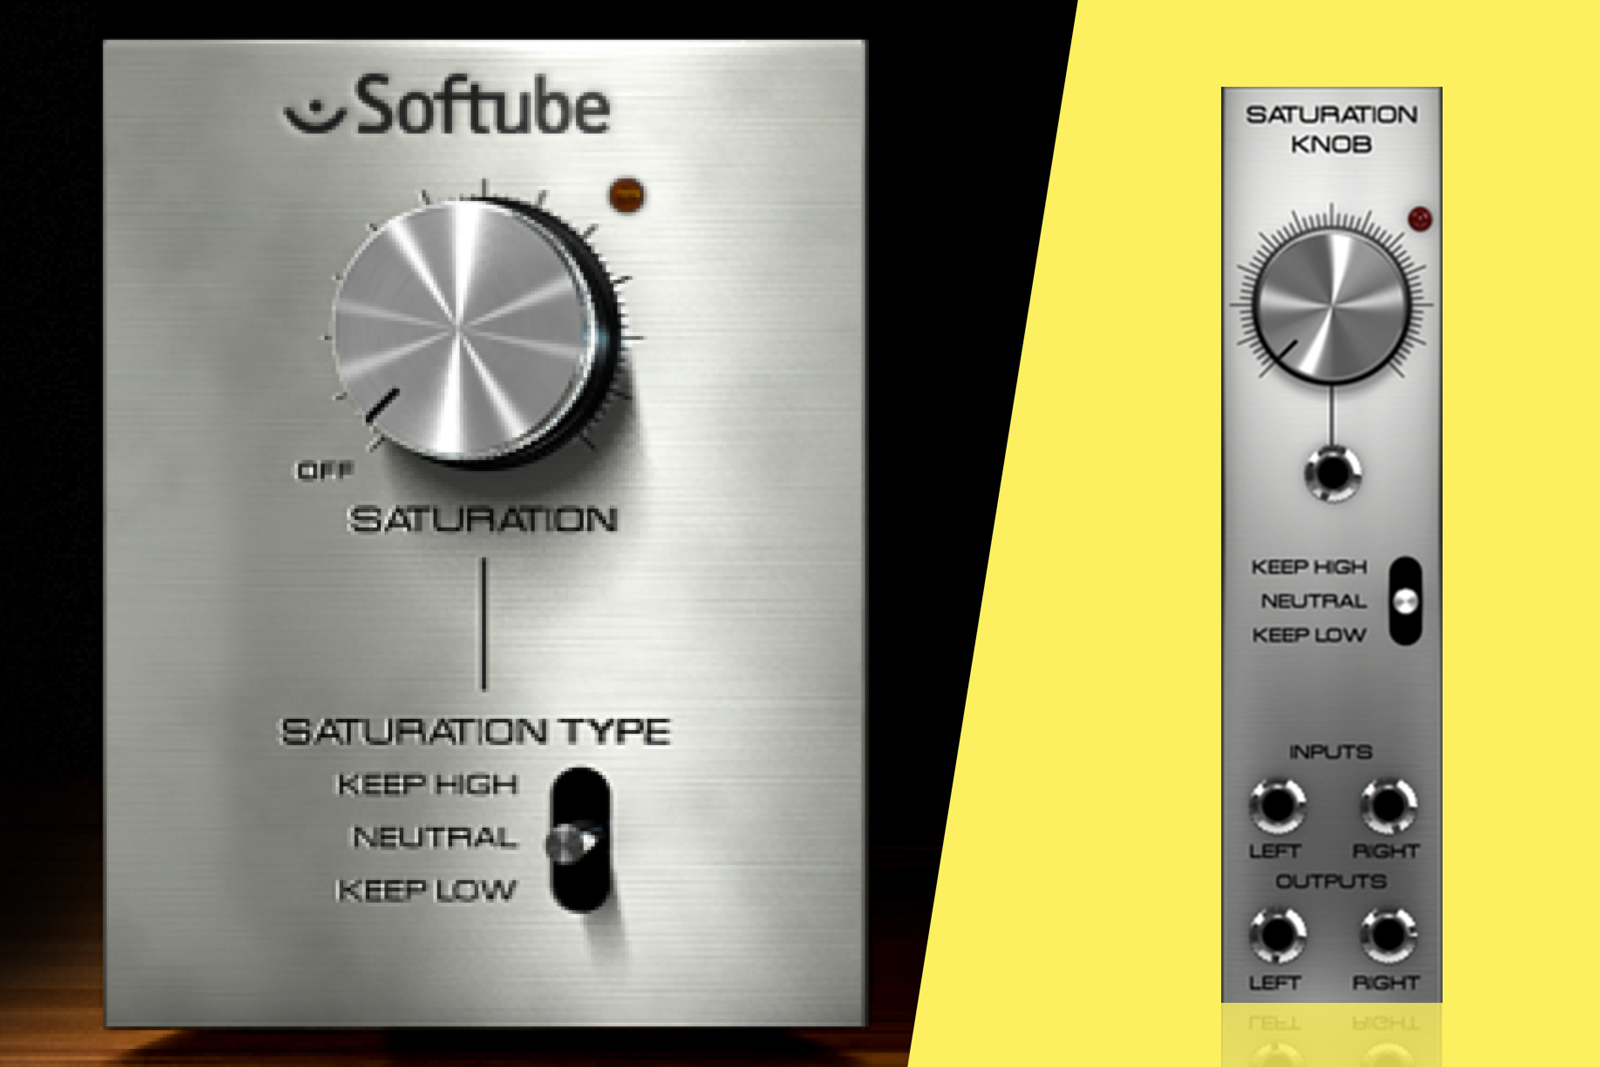 softube saturation knob download